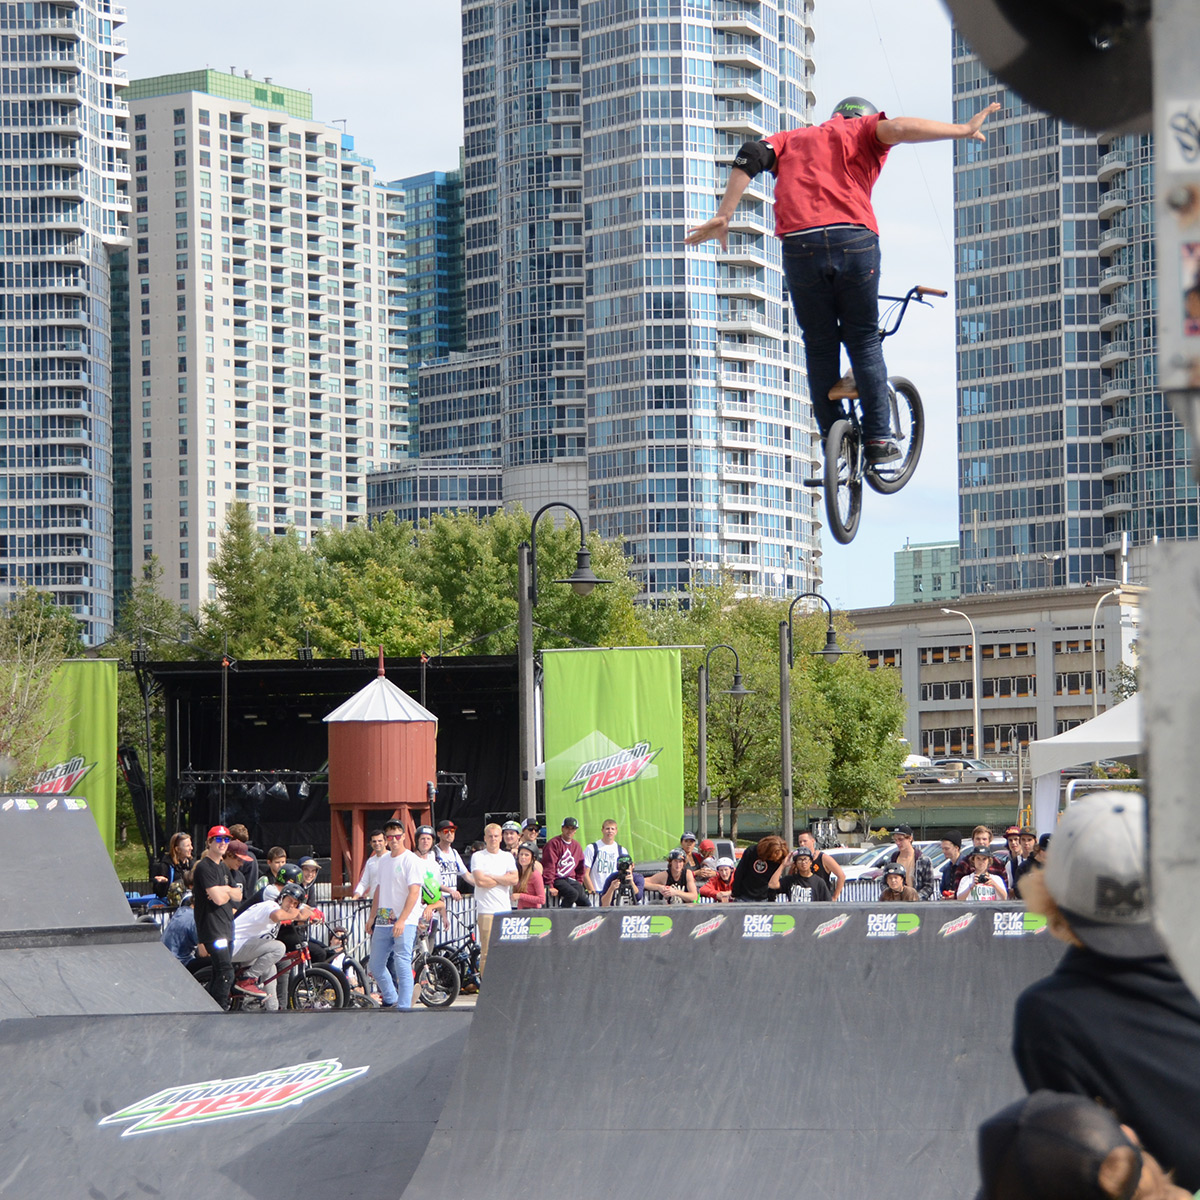 Suicide no hander at BMX Dew Tour Am Series in Toronto